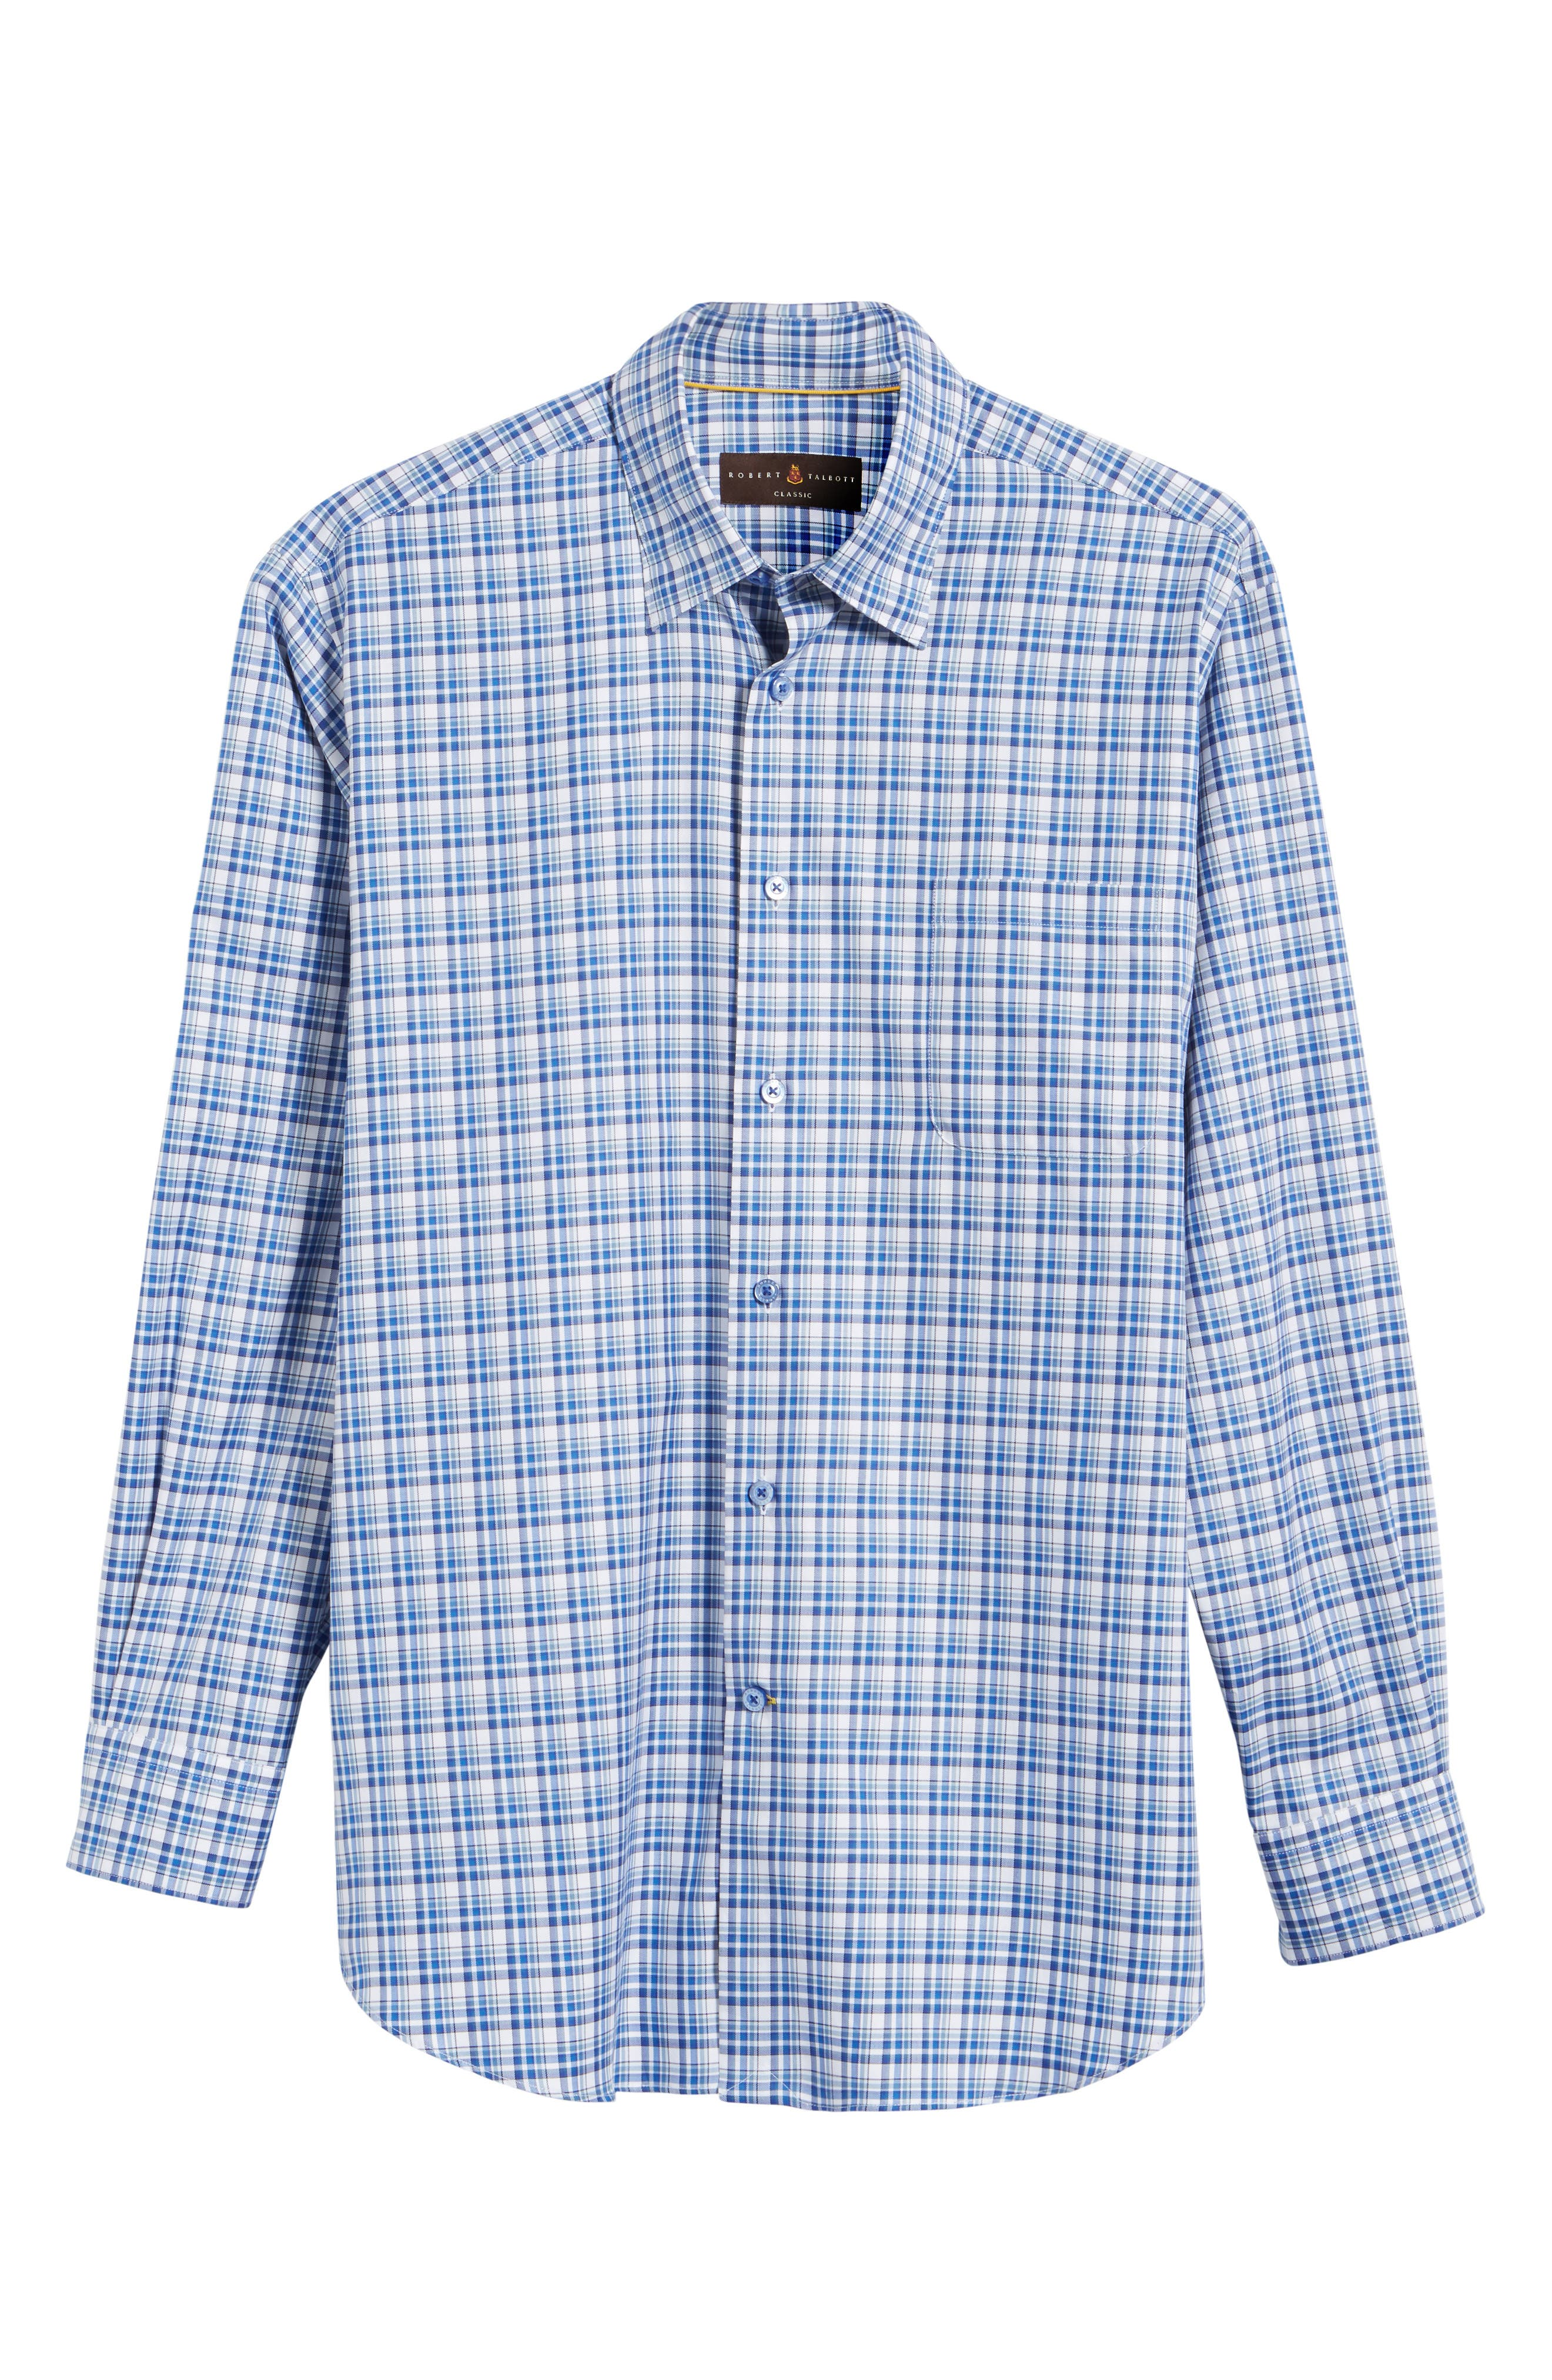 Anderson Classic Fit Plaid Micro Twill Sport Shirt,                             Alternate thumbnail 6, color,                             417